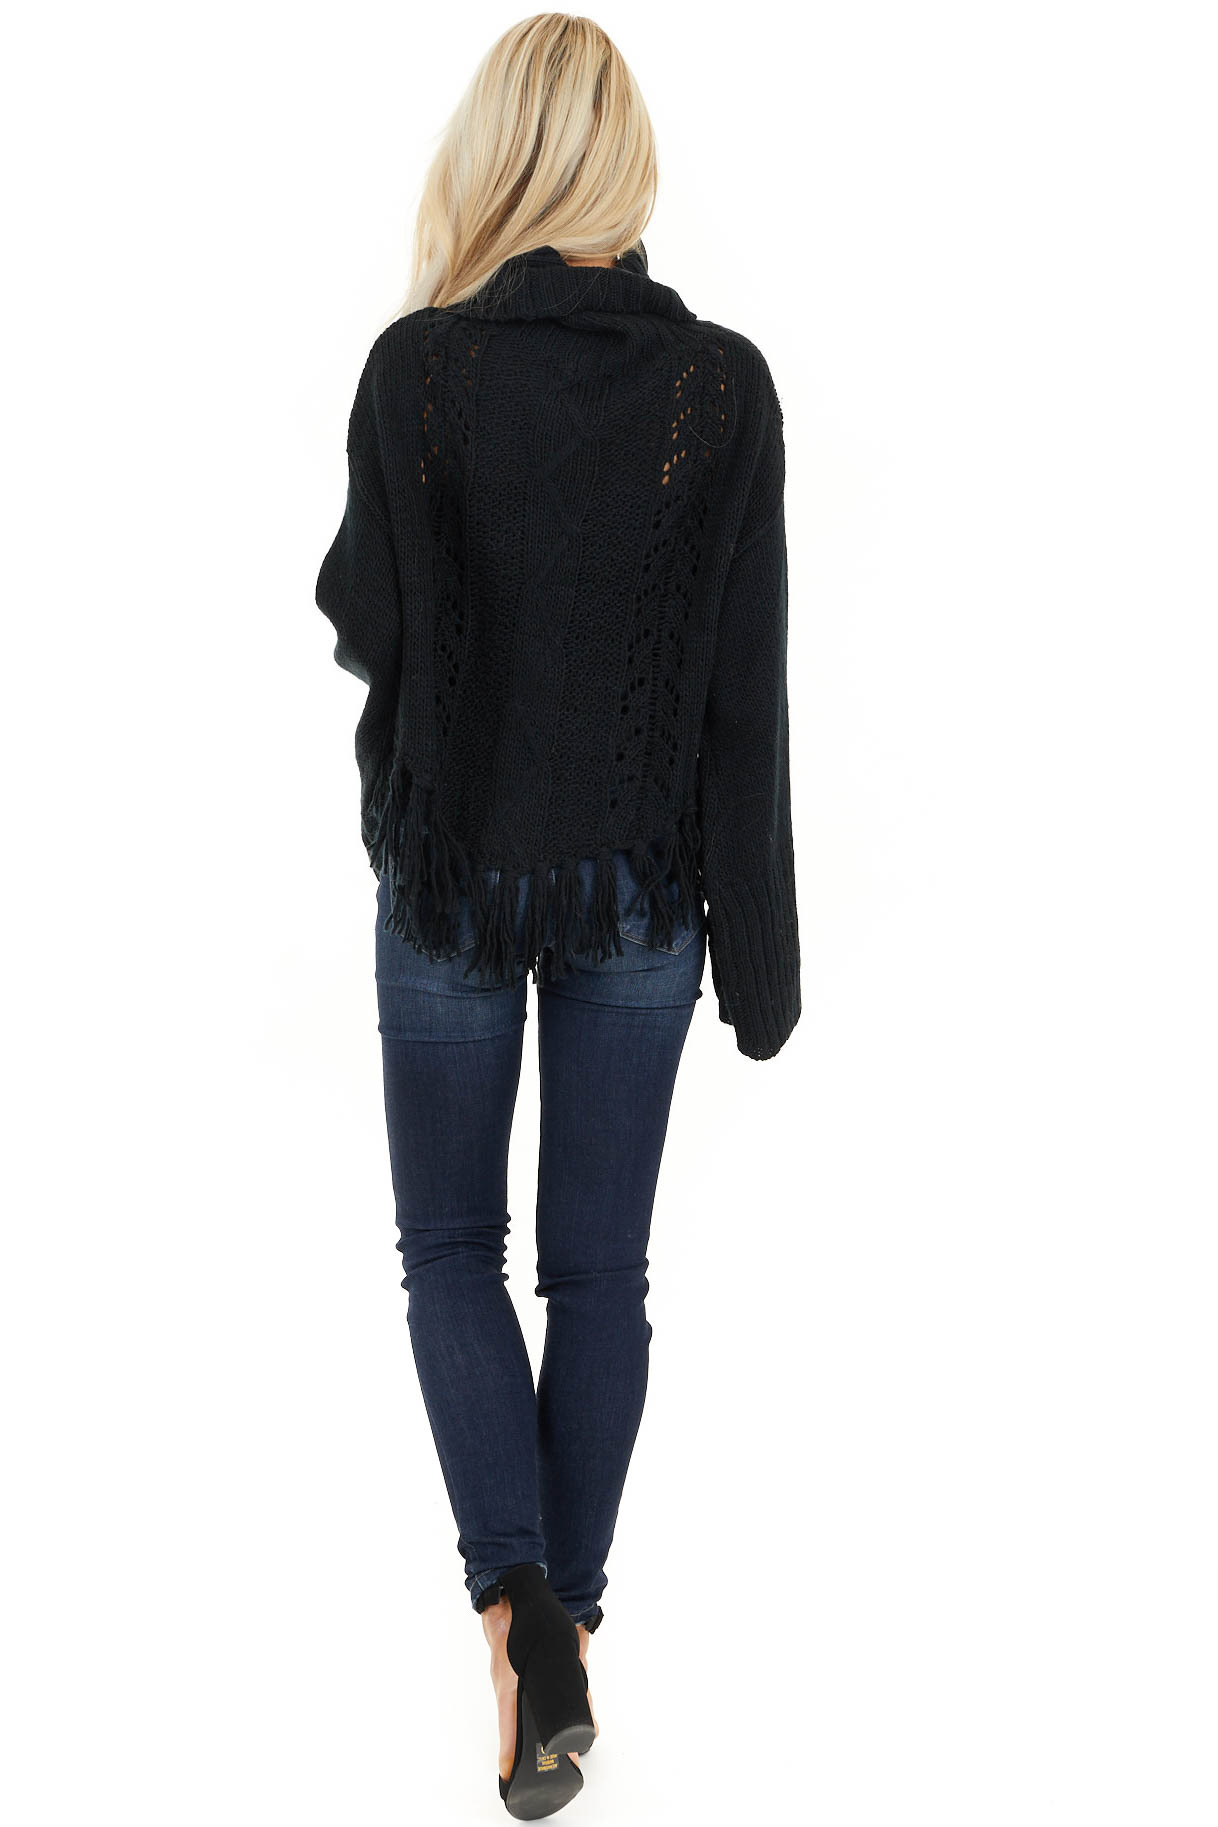 Black Long Sleeve Cable Knit Sweater with Tassel Details back full body